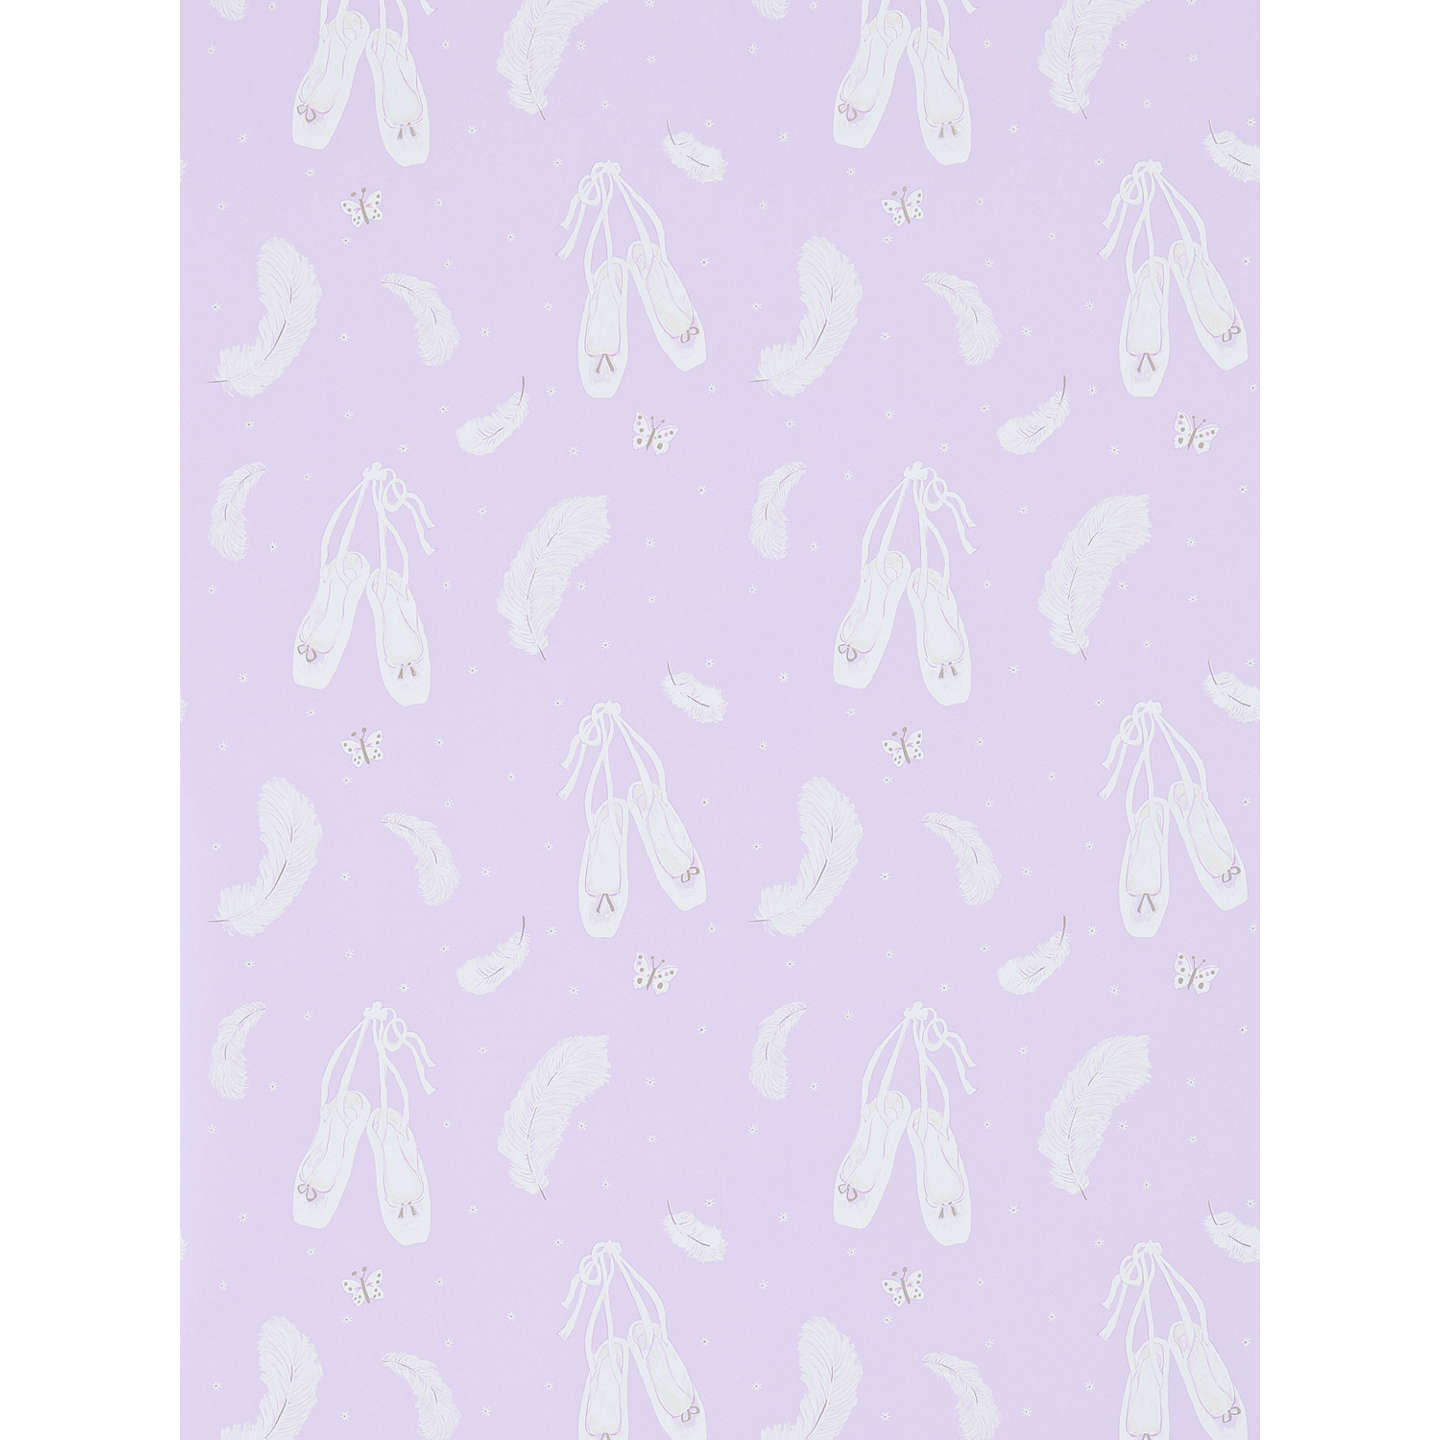 Sanderson ballet shoes wallpaper at john lewis buysanderson ballet shoes wallpaper lavender dlit214019 online at johnlewis voltagebd